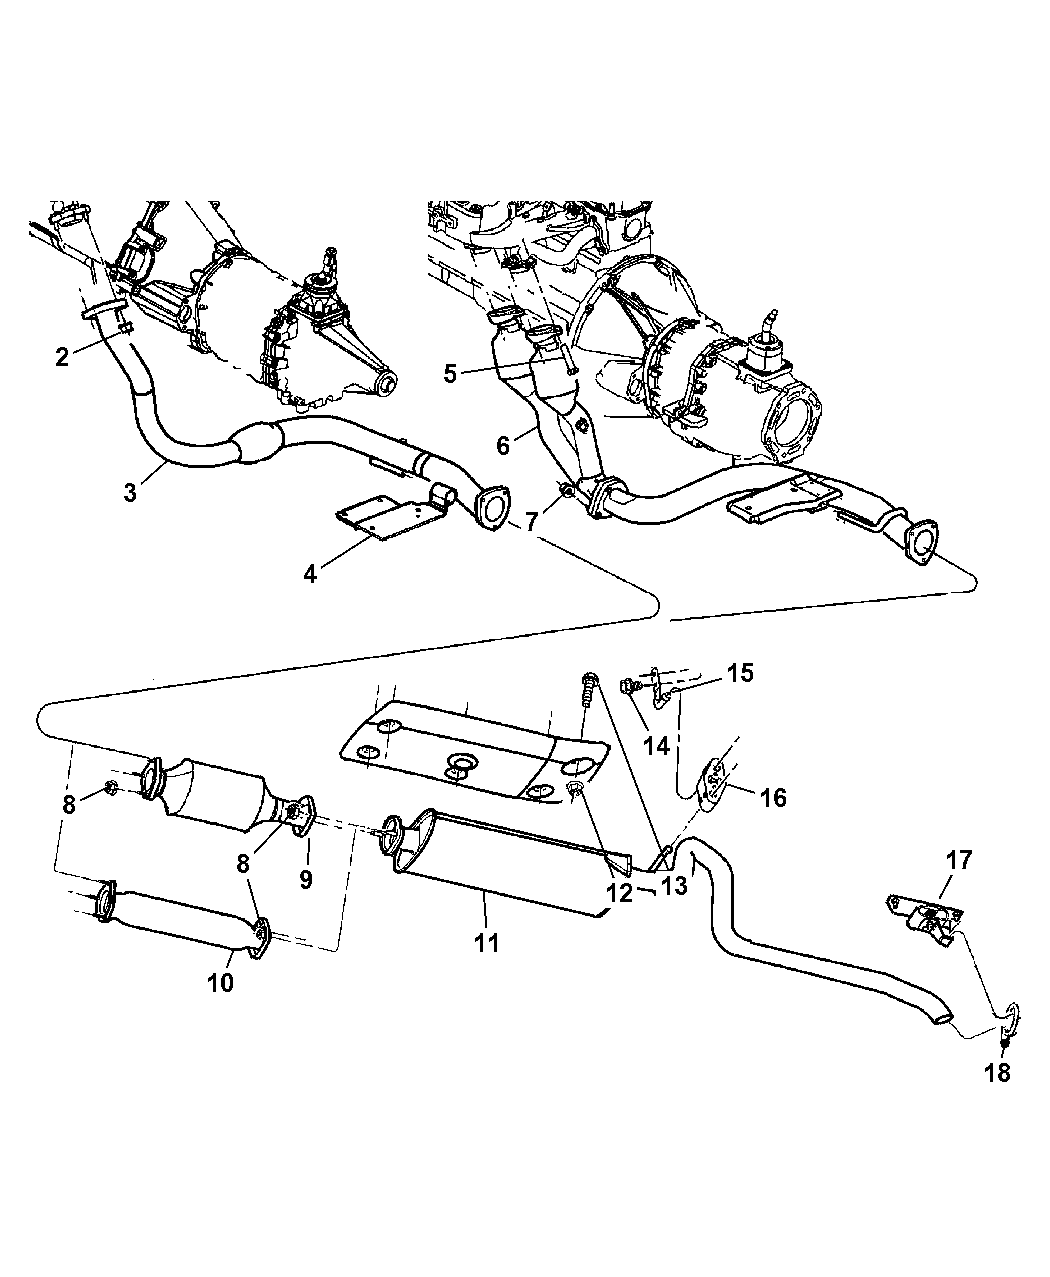 Wiring Diagram: 31 2000 Jeep Cherokee Exhaust System Diagram